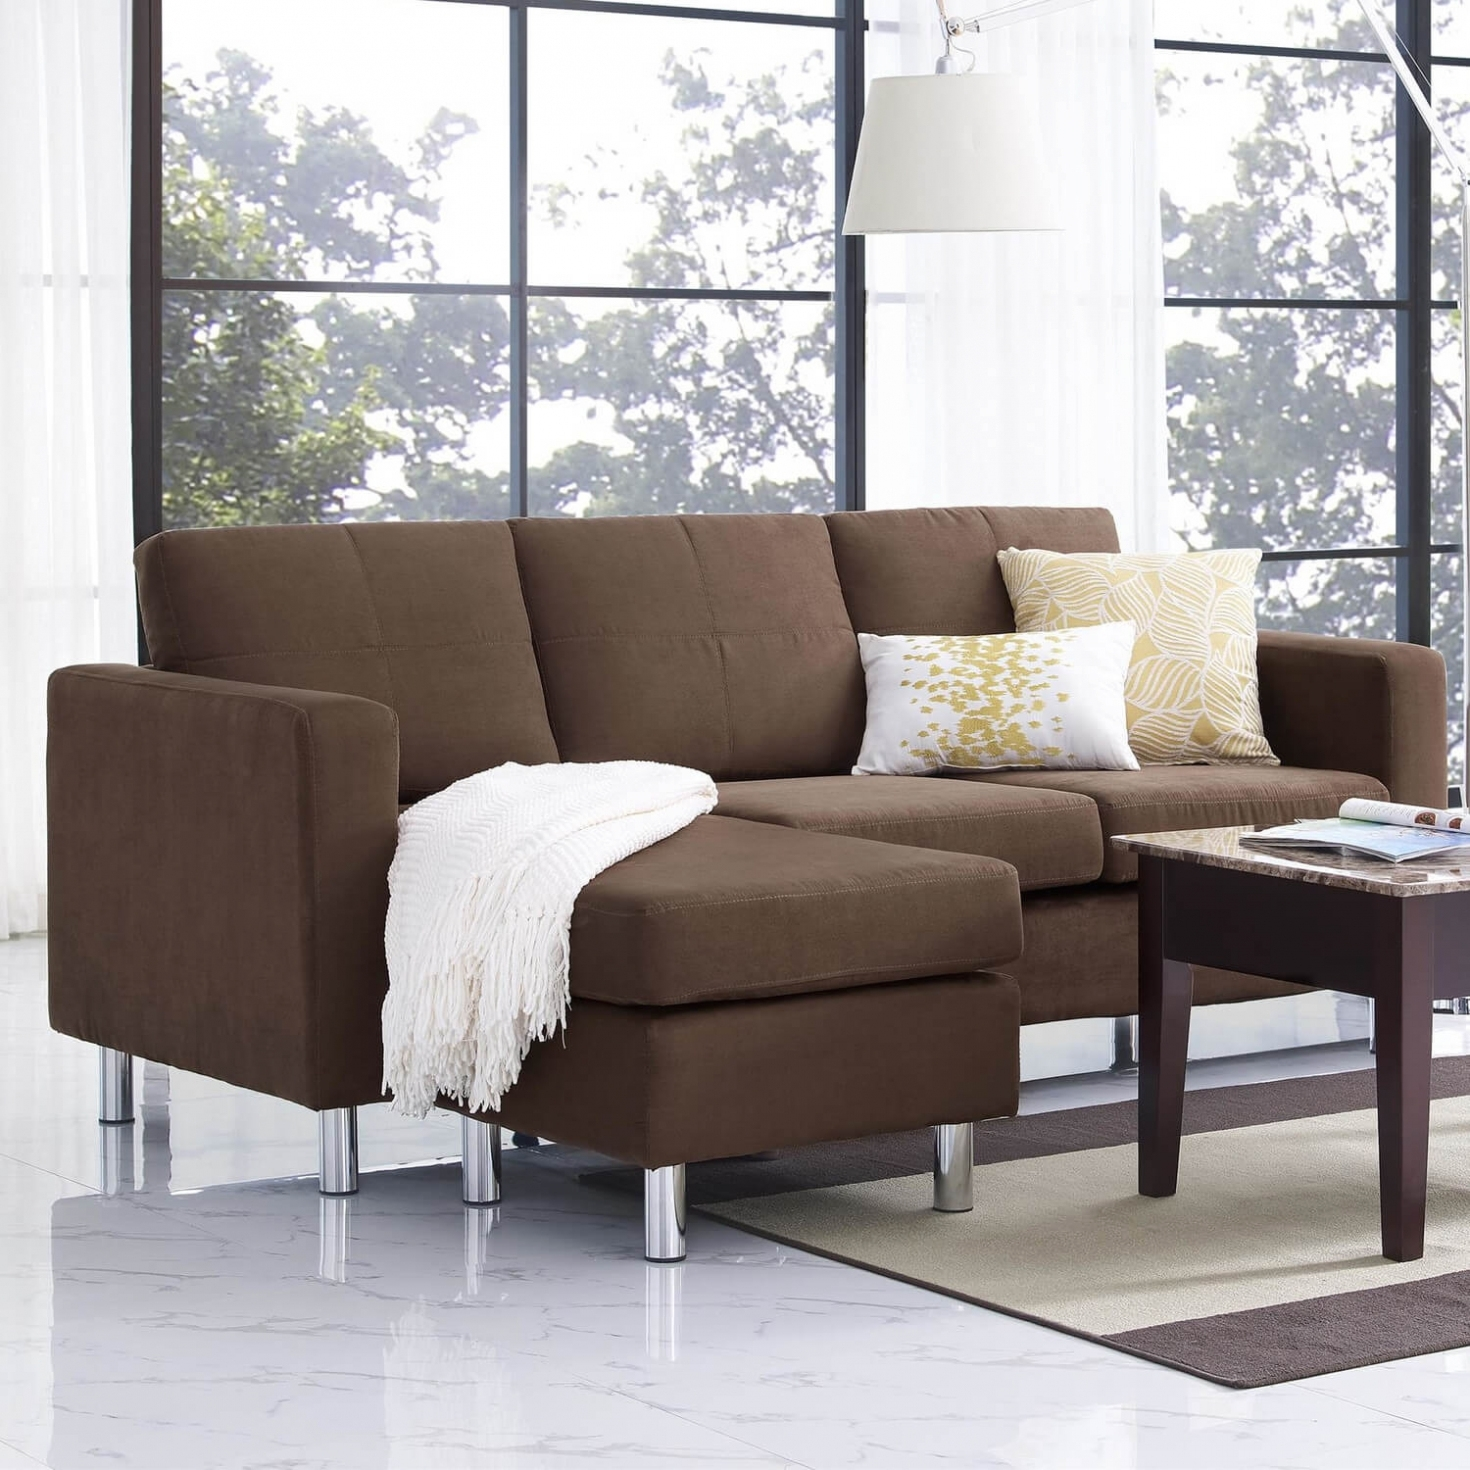 Corner Sofa Bed Under 300: 10 Collection Of Sectional Sofas Under 400